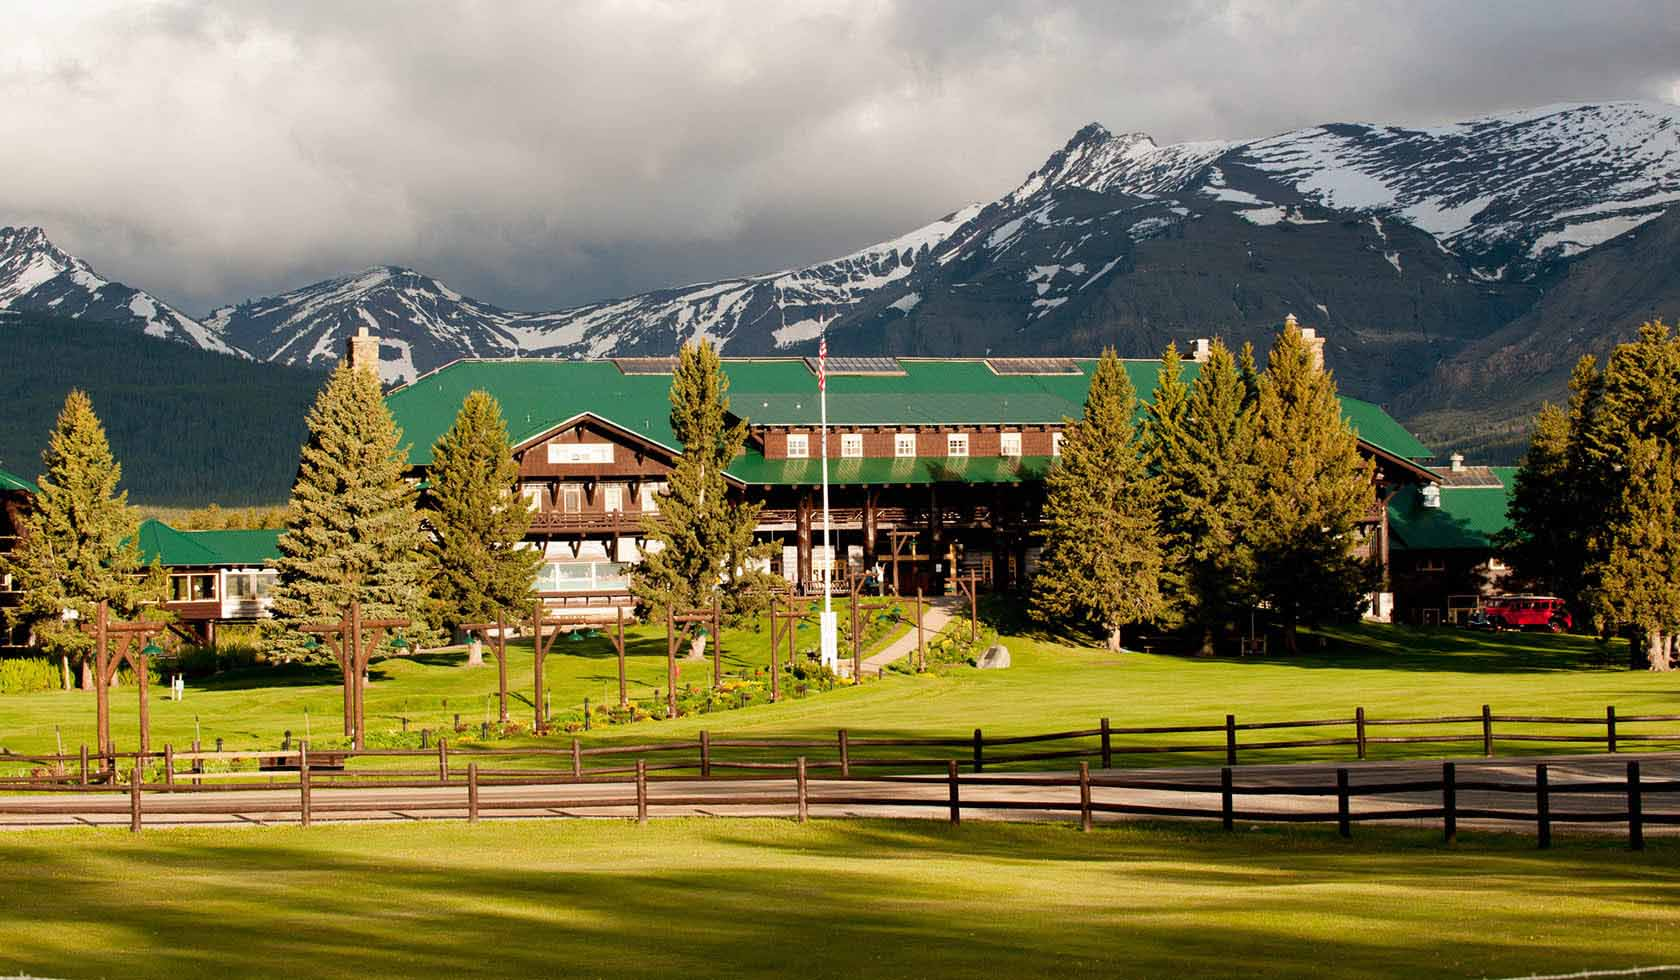 east glacier park chat sites Get directions, maps, and traffic for east glacier park, mt check flight prices and hotel availability for your visit.